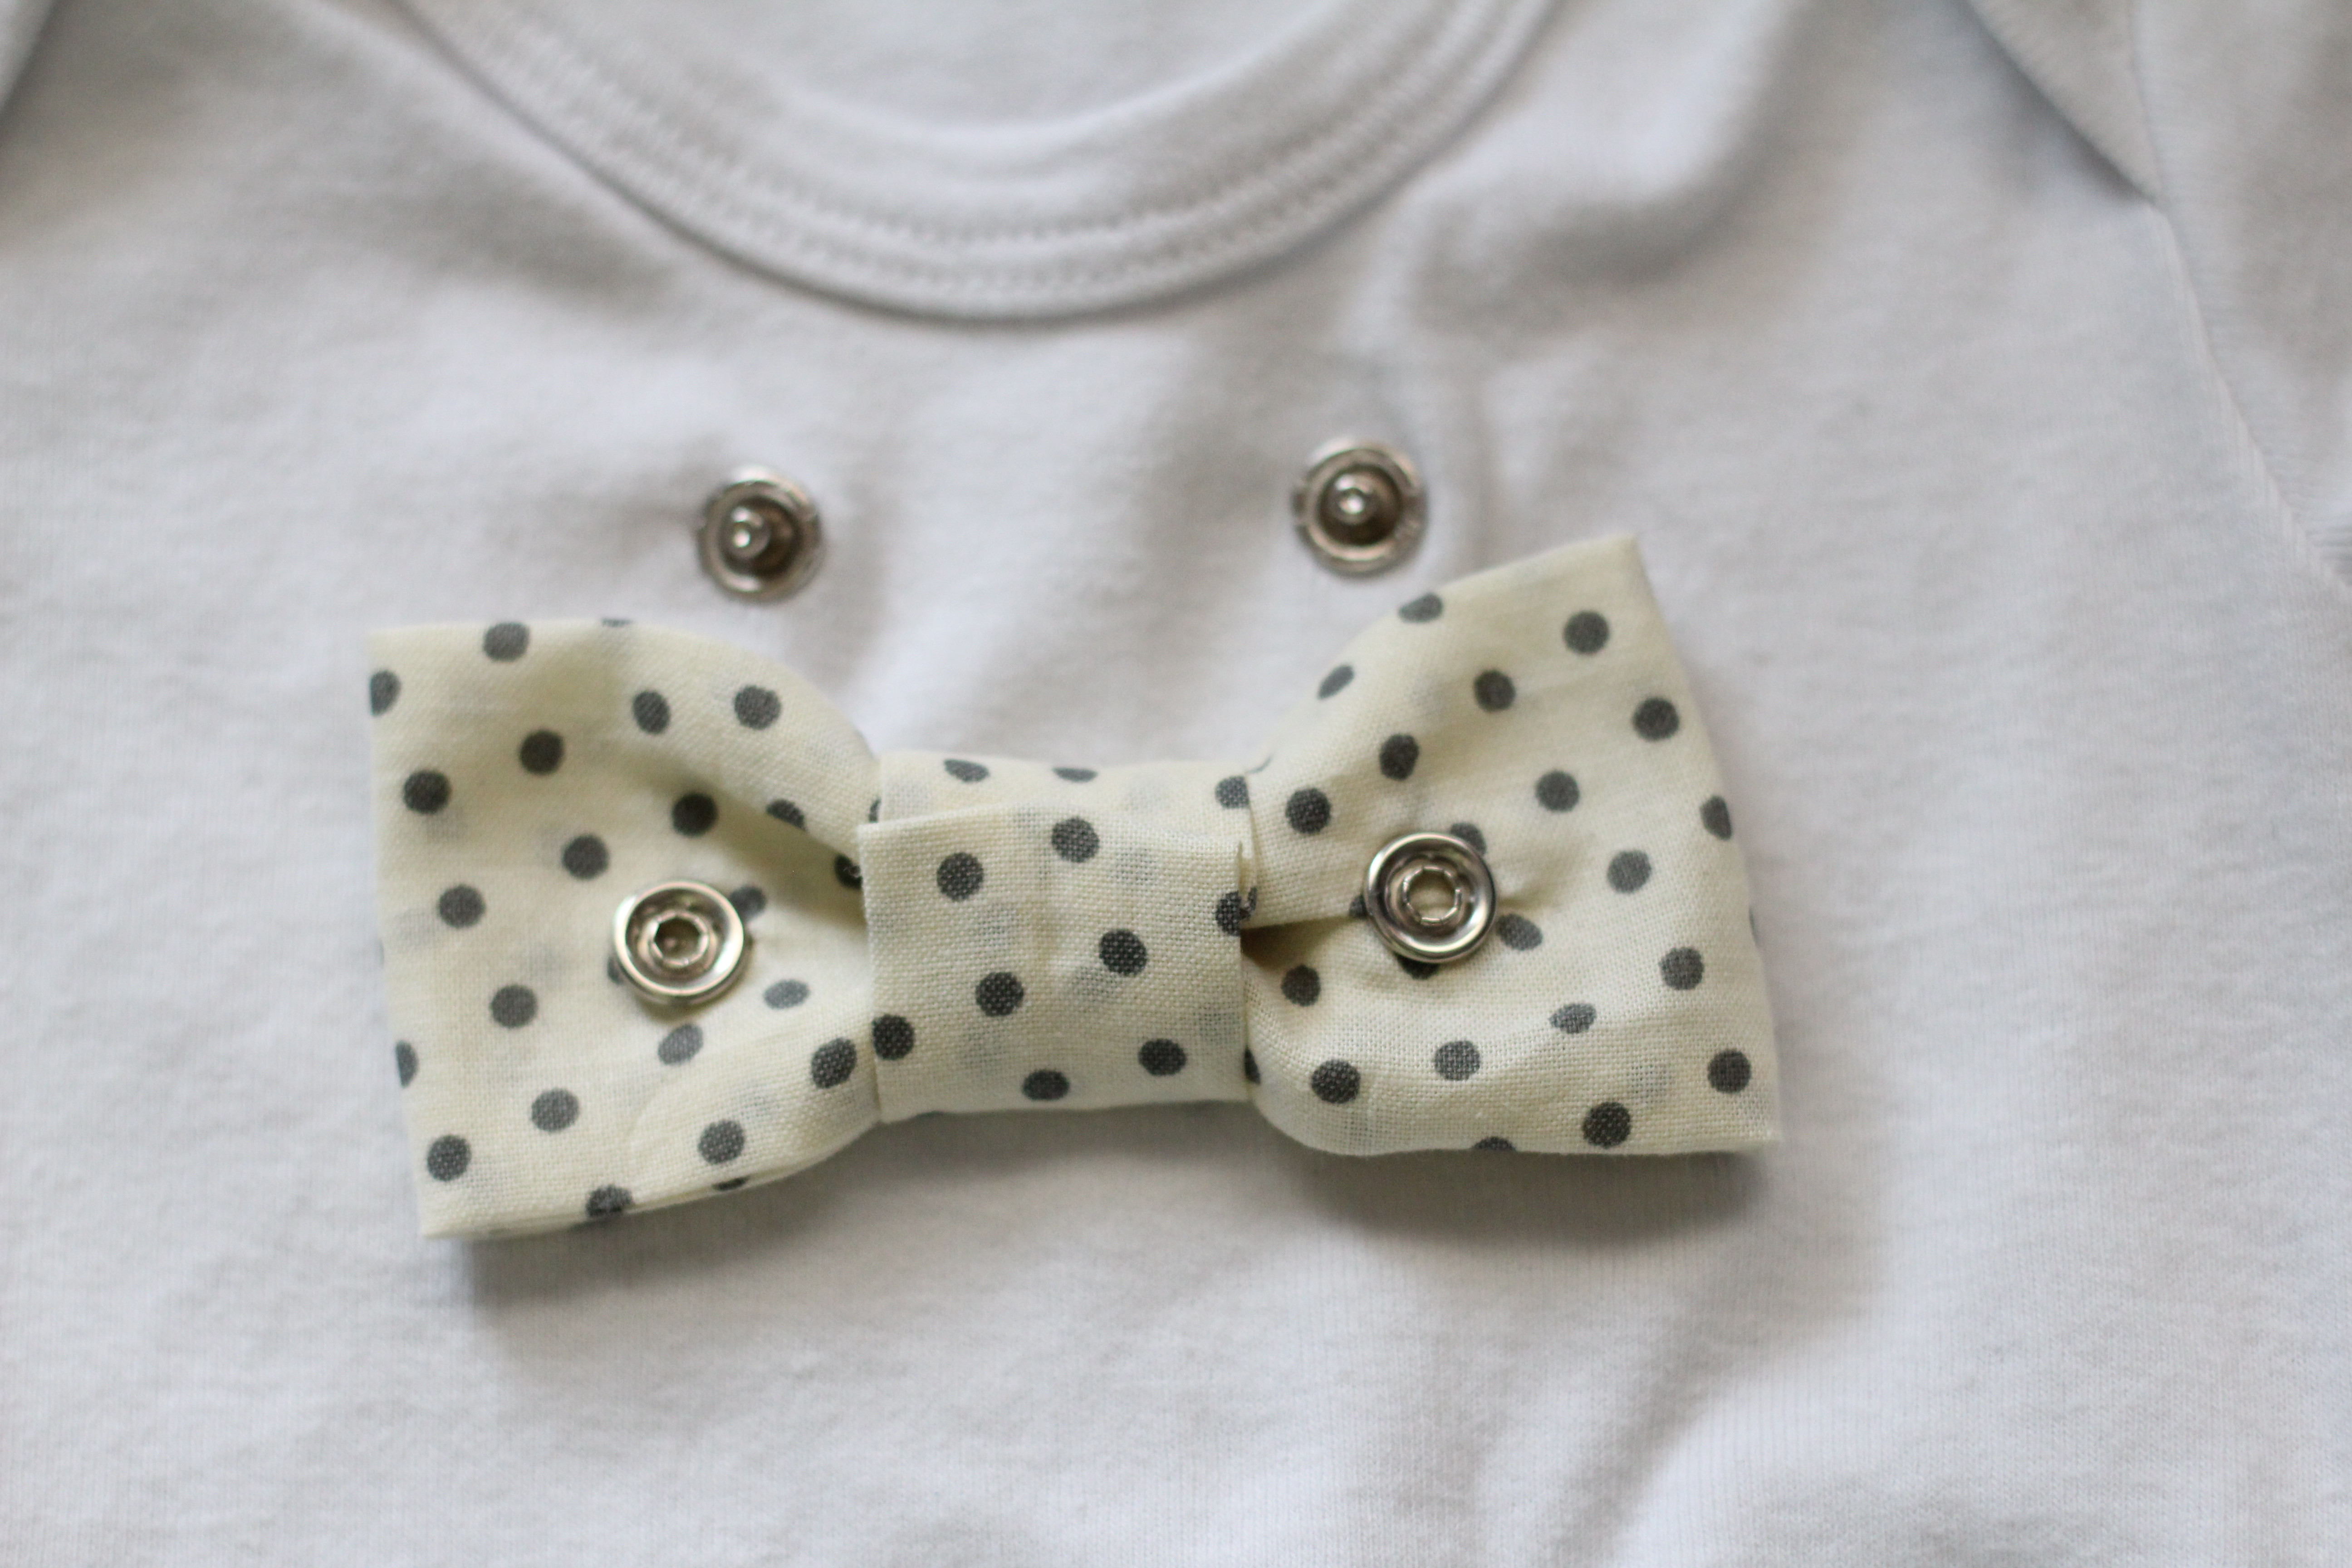 Best ideas about DIY Baby Bow Ties . Save or Pin Baby Bow Tie DIY Now.